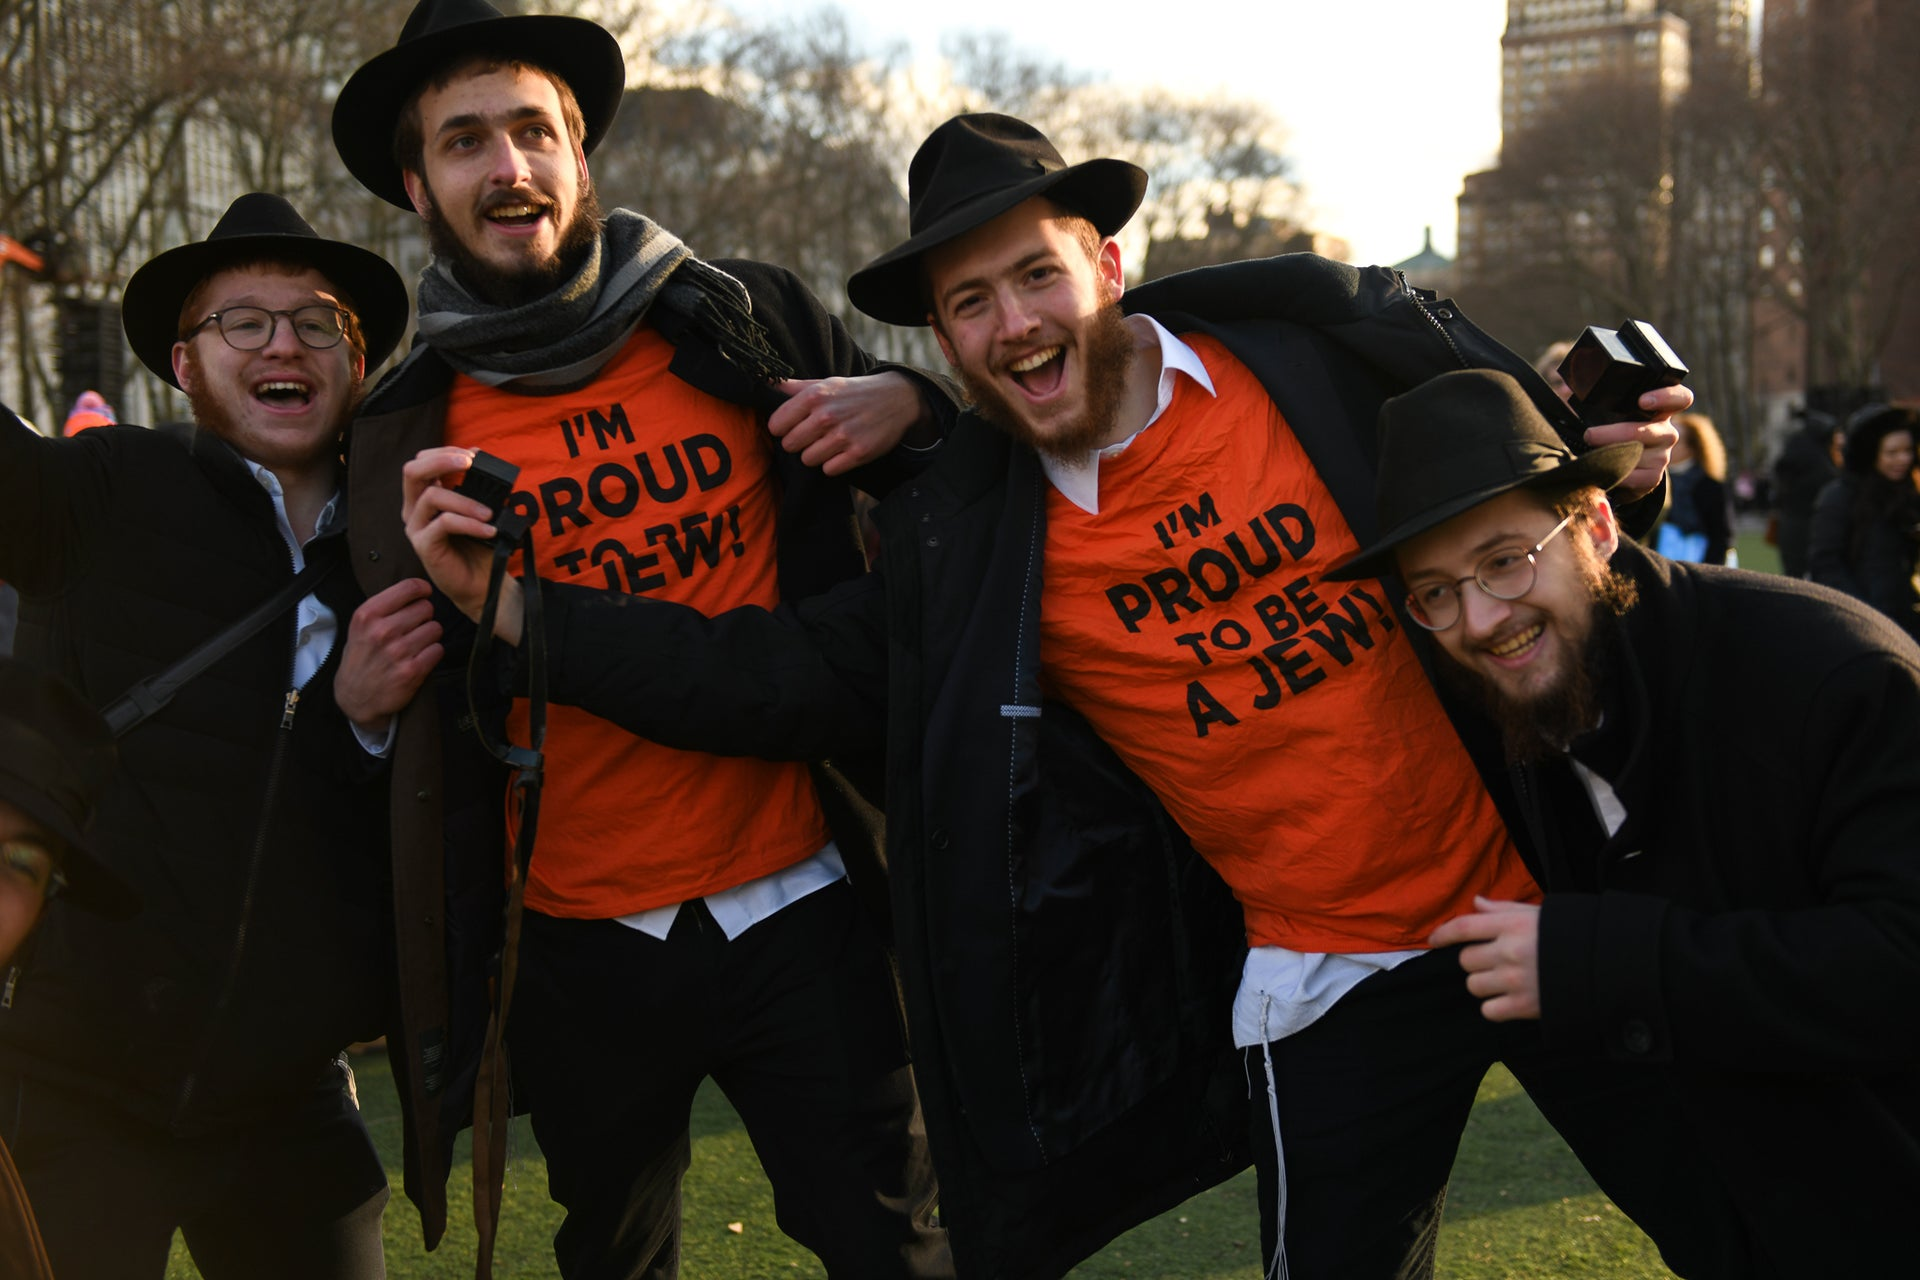 Ultra-Orthodox Jewish men participate in a march against anti-Semitism, New York City, January 5, 2019